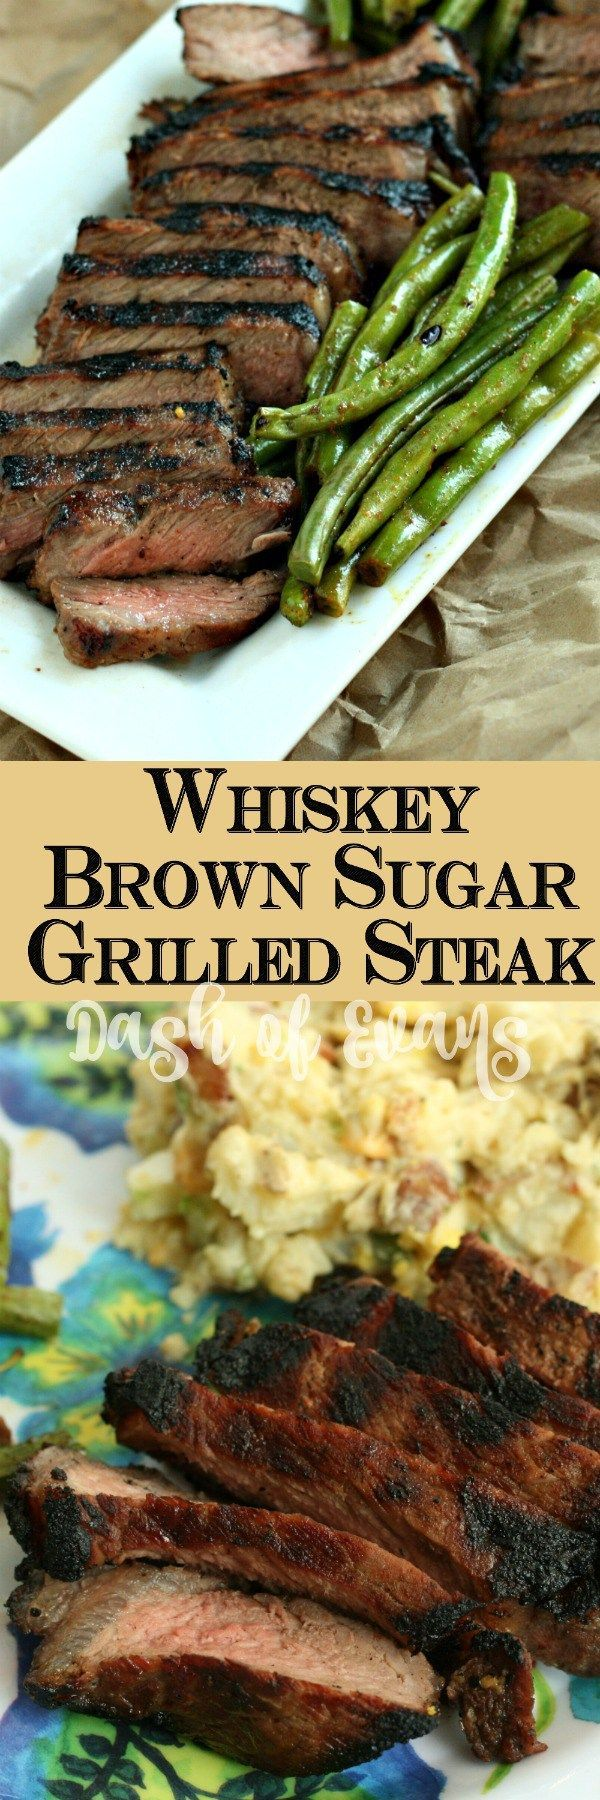 Whiskey Brown Sugar Grilled Steak - Dash Of Evans